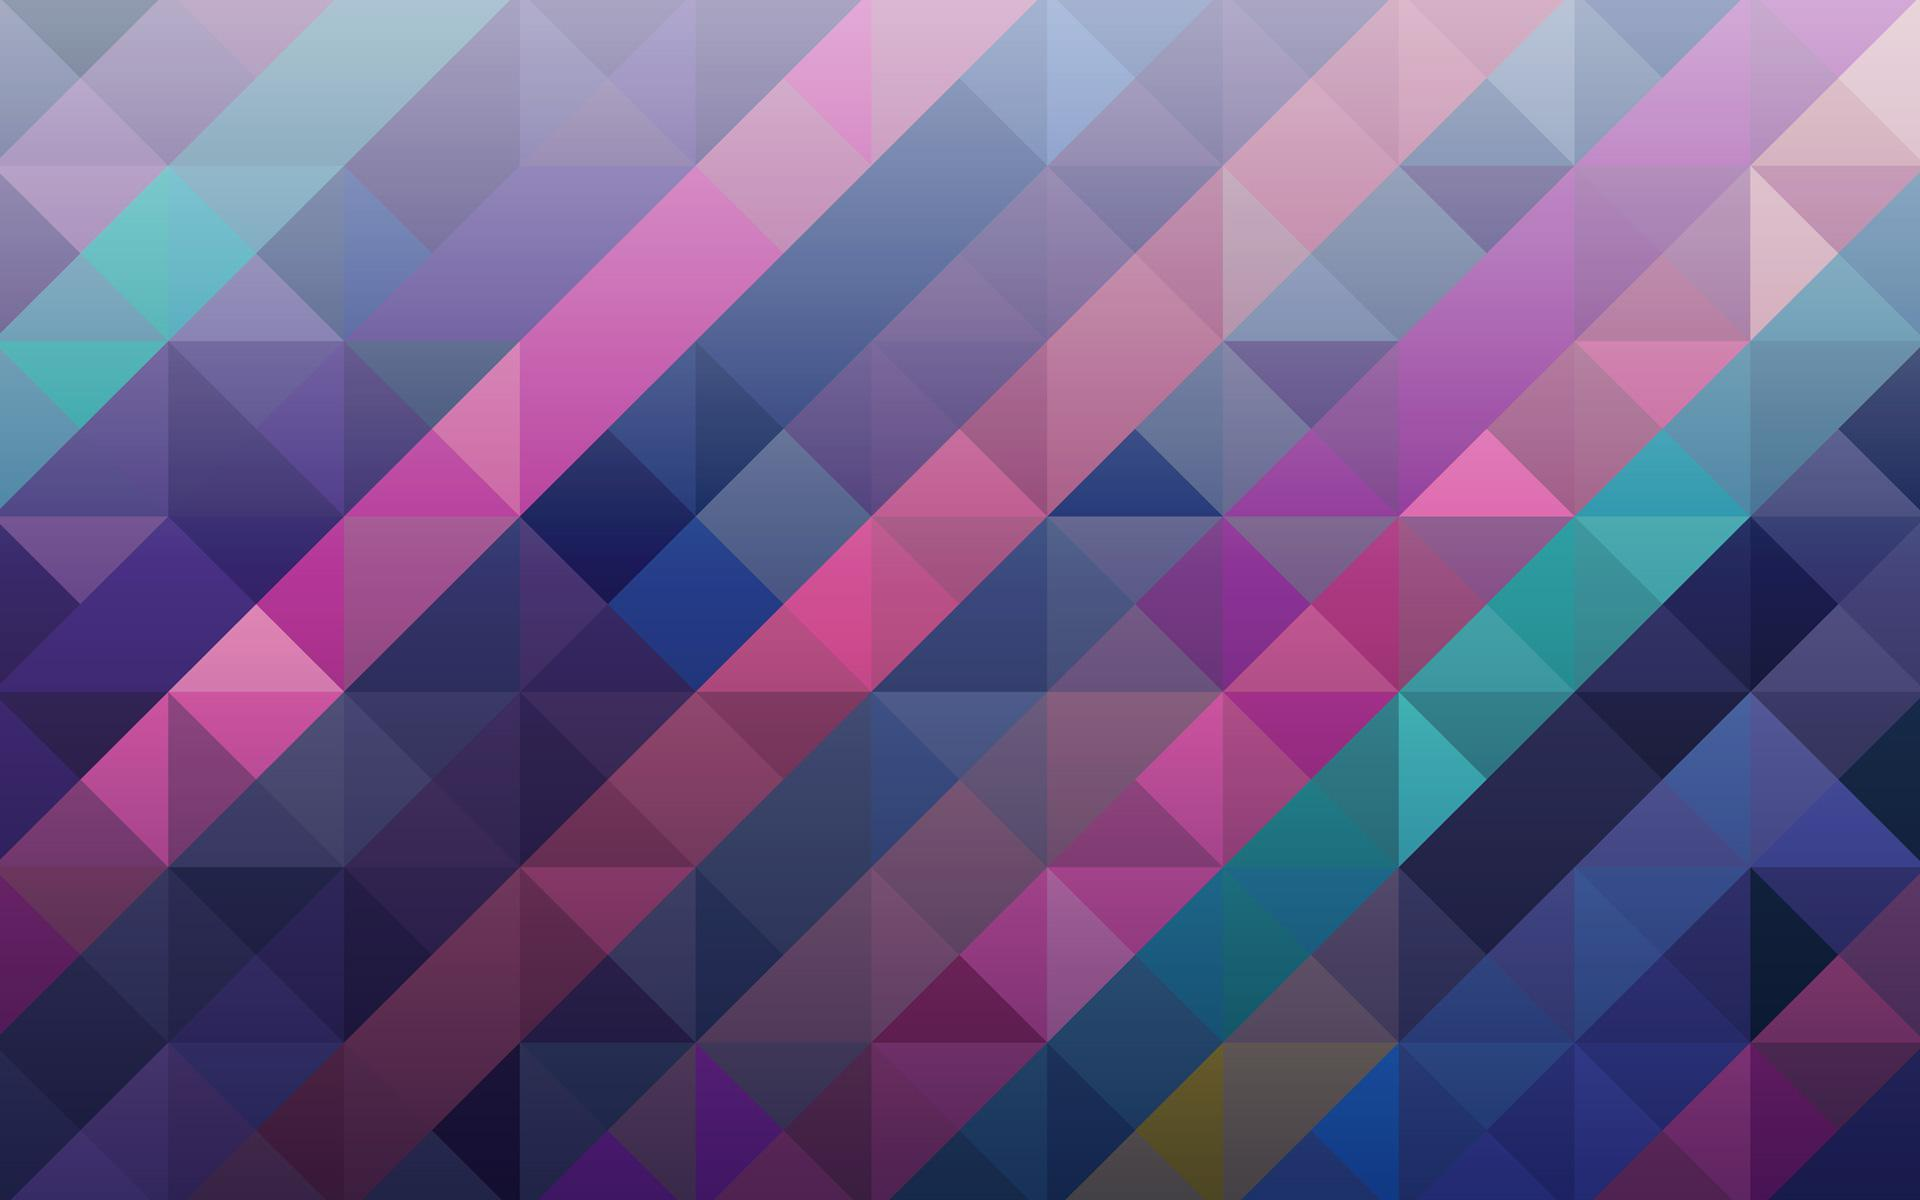 Abstract background for Mac HQ Wallpaper